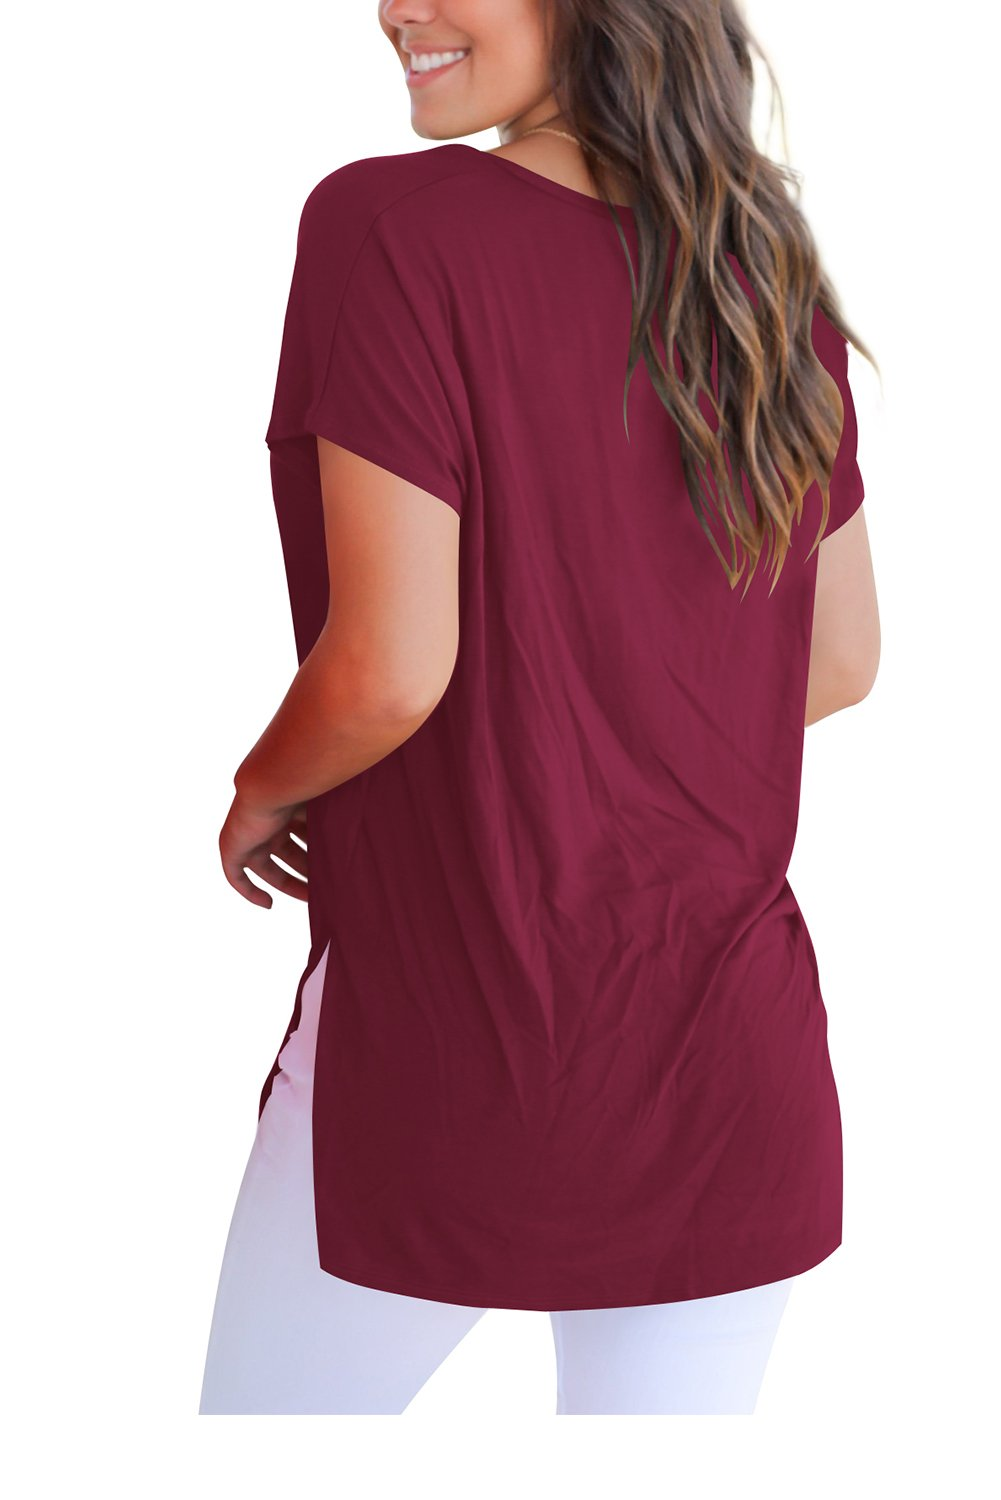 FAVALIVE Women Tees and Tops Short Sleeve V Neck Tunic T Shirts Plain Wind Red XL by FAVALIVE (Image #3)